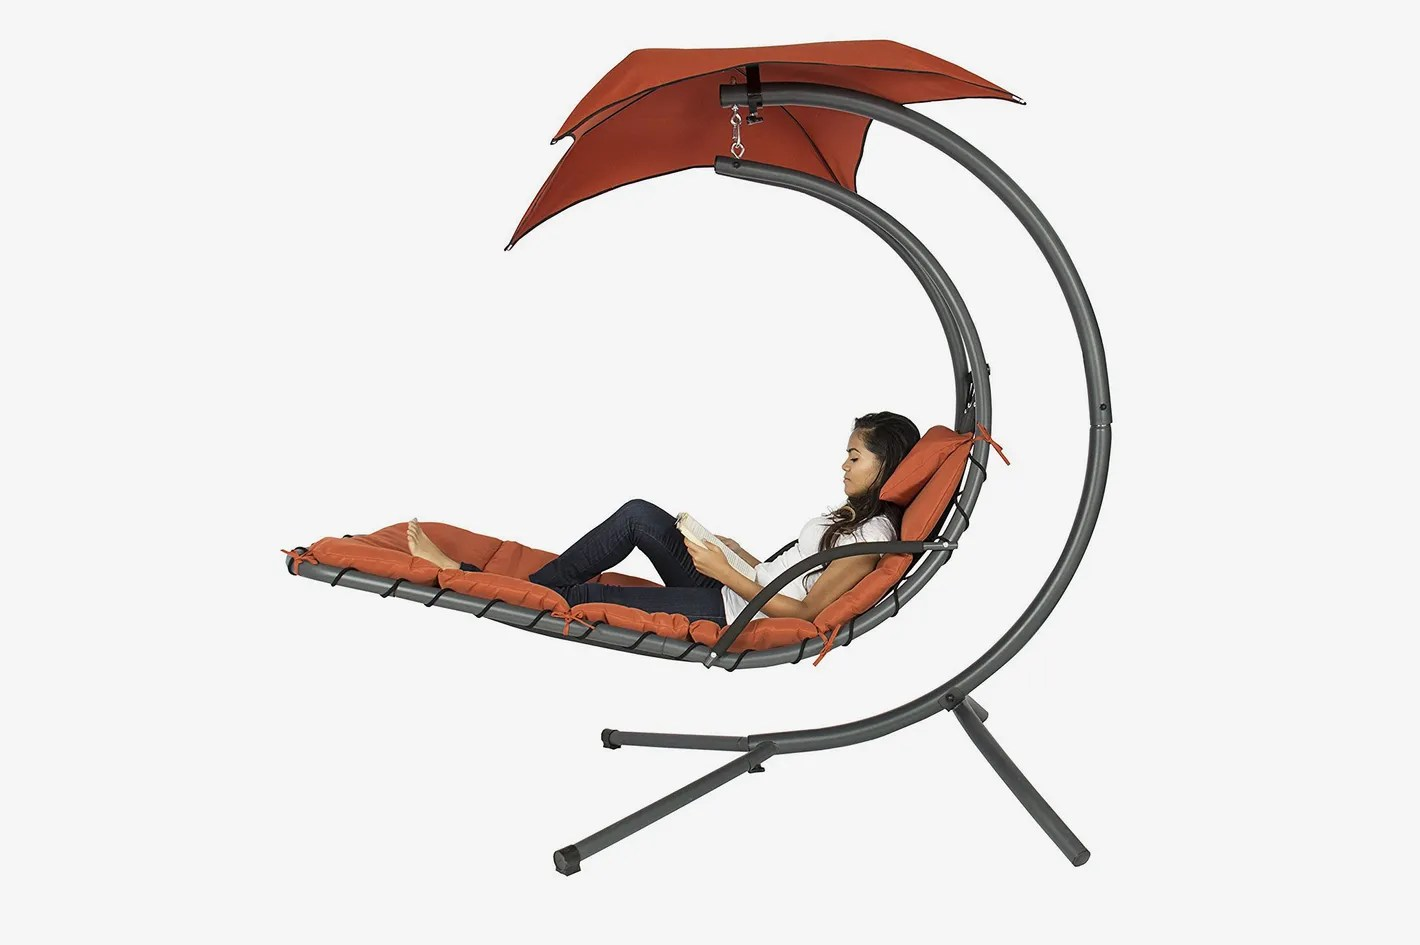 Hanging Outdoor Chairs Best Choice Products Hanging Chaise Lounger Chair